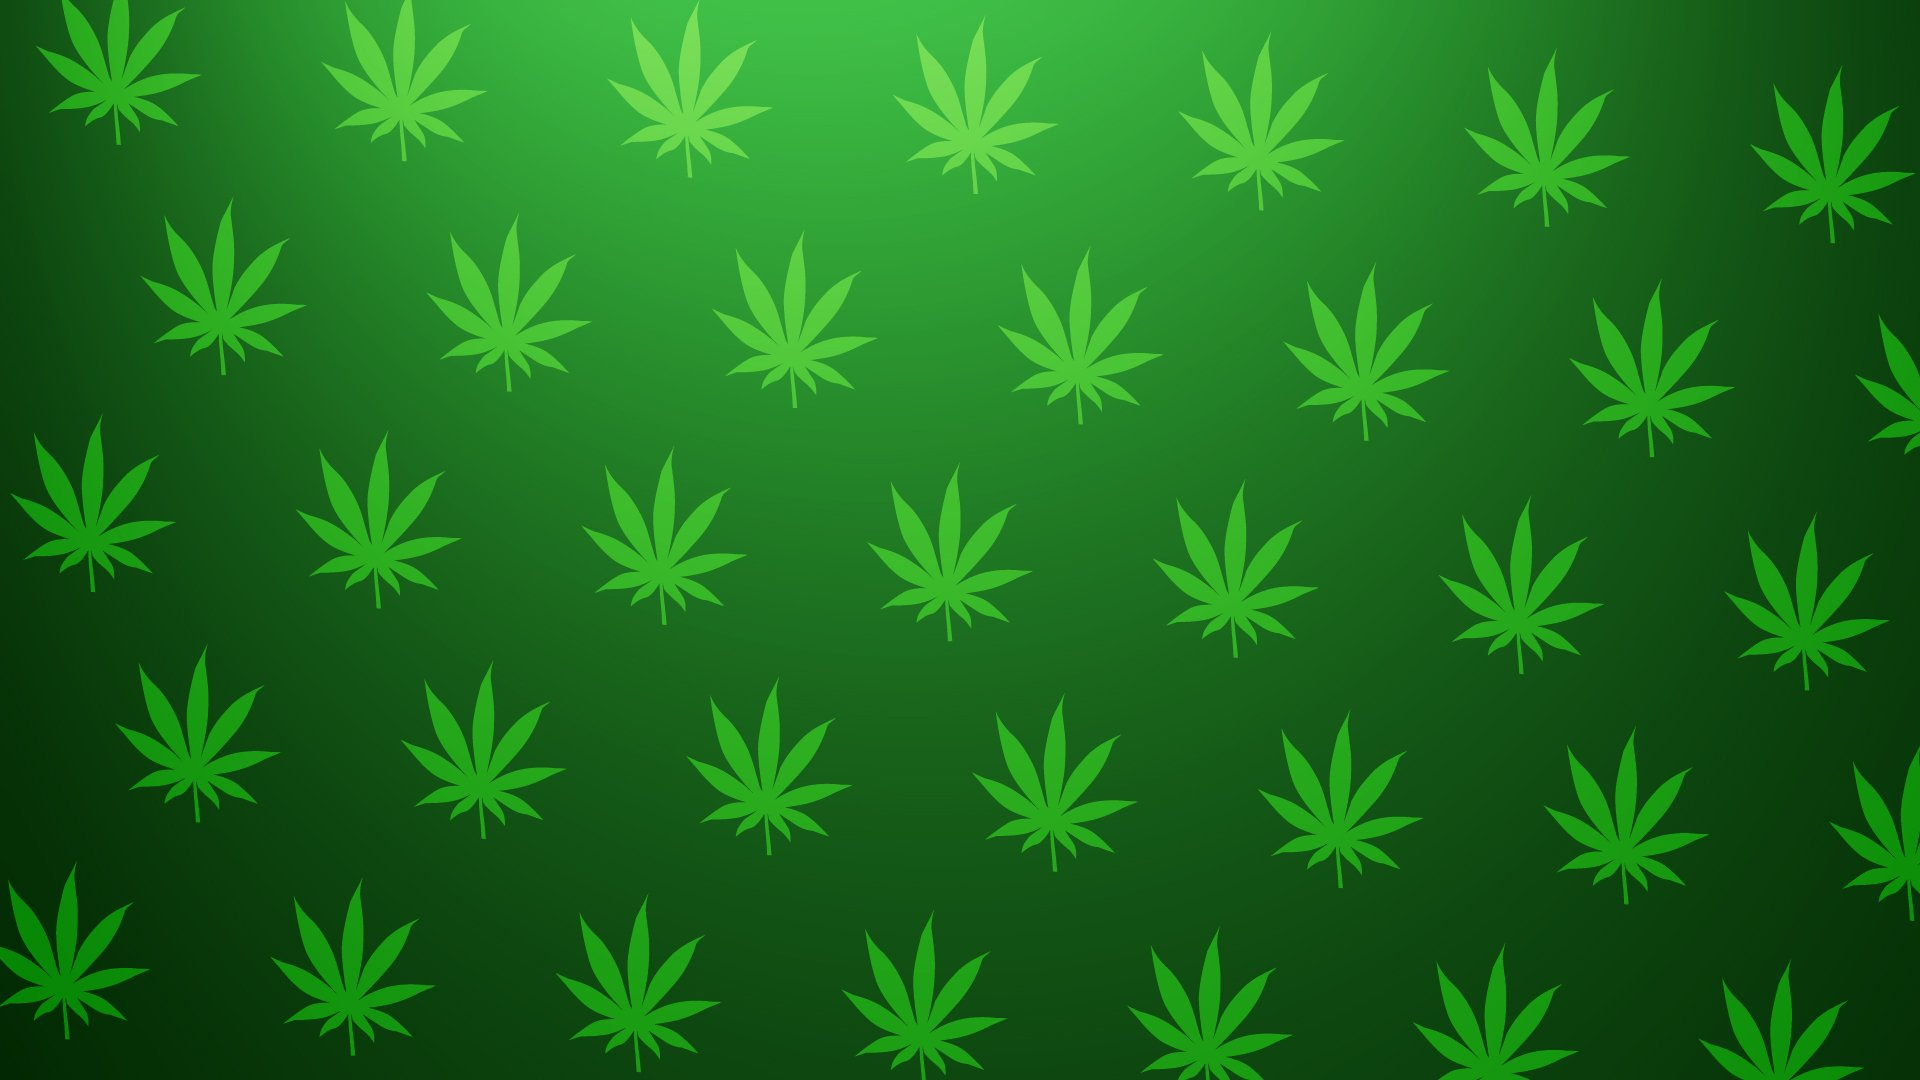 weed background wallpaper | 1920x1080 | 436638 | wallpaperup